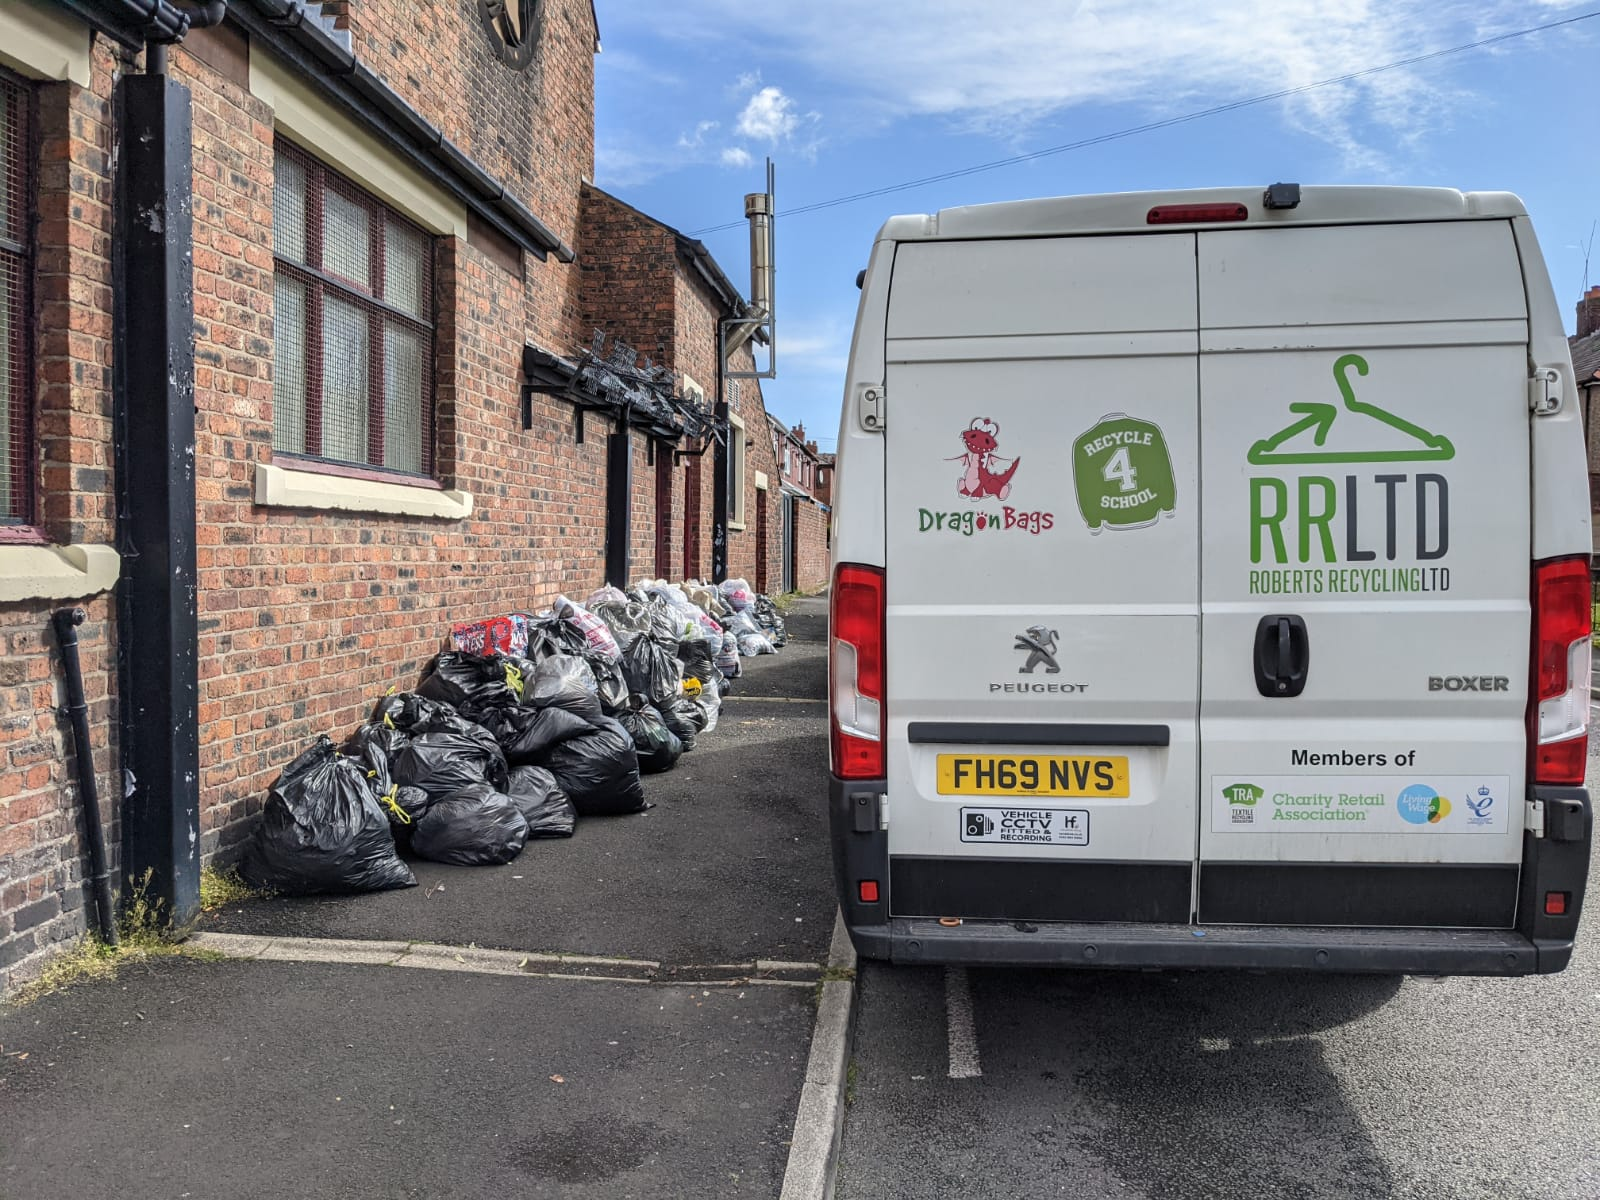 WHERE CAN I RECYCLE CLOTHES IN LIVERPOOL